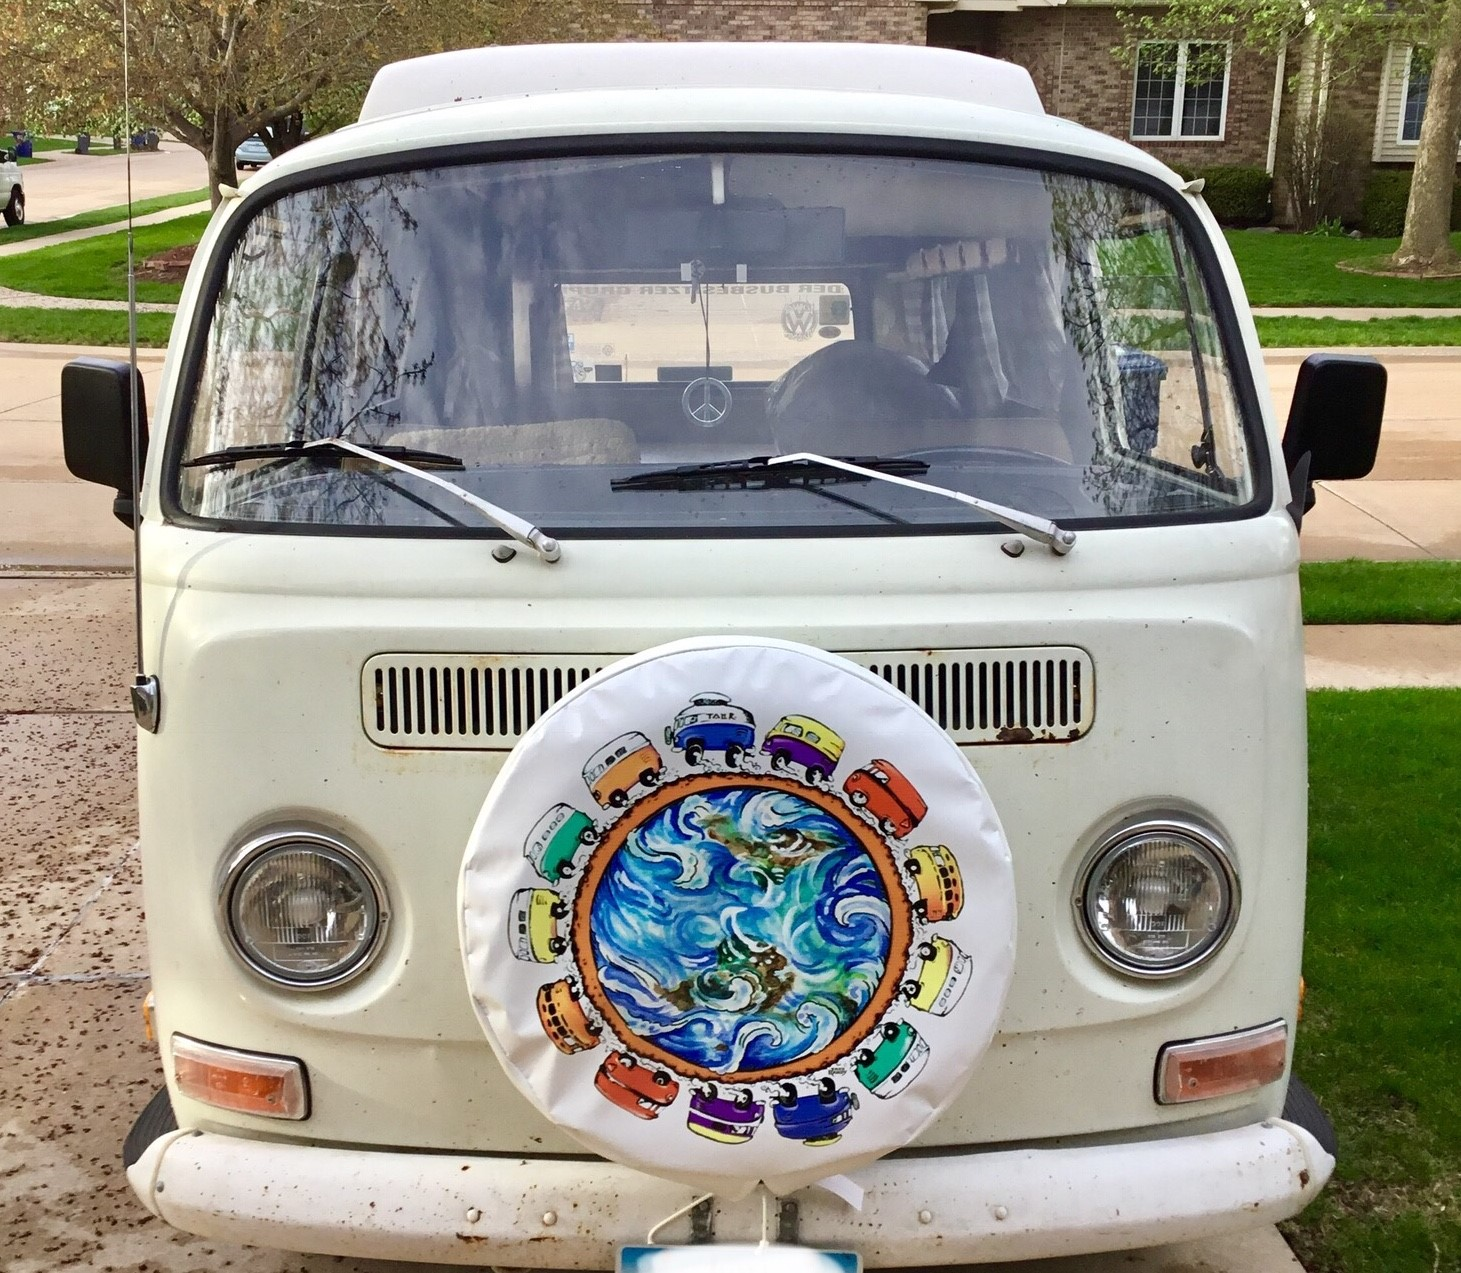 13 VW Bus spare tire cover with white tread